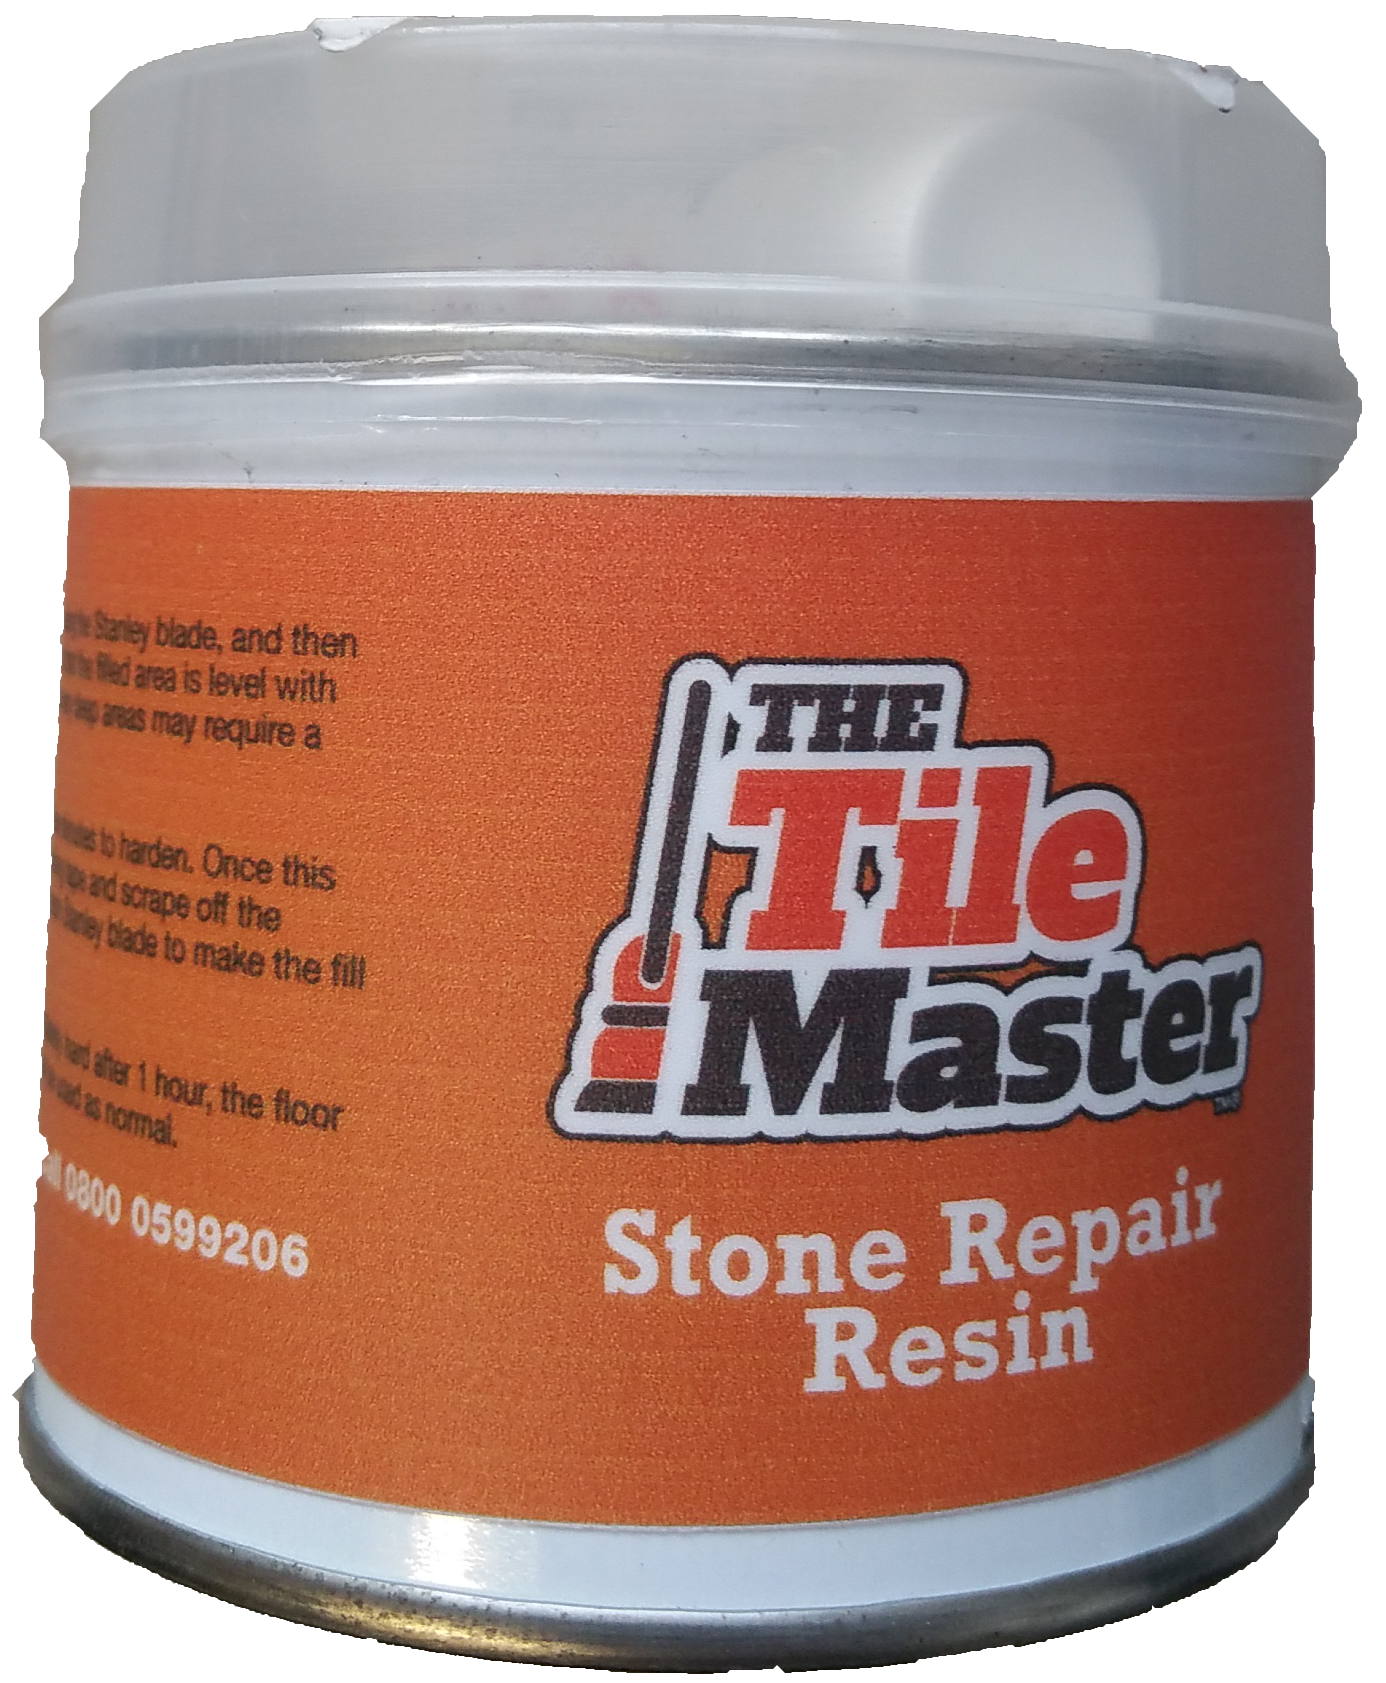 Stone Repair Resin Filler Cream With Hardner The Tile Master